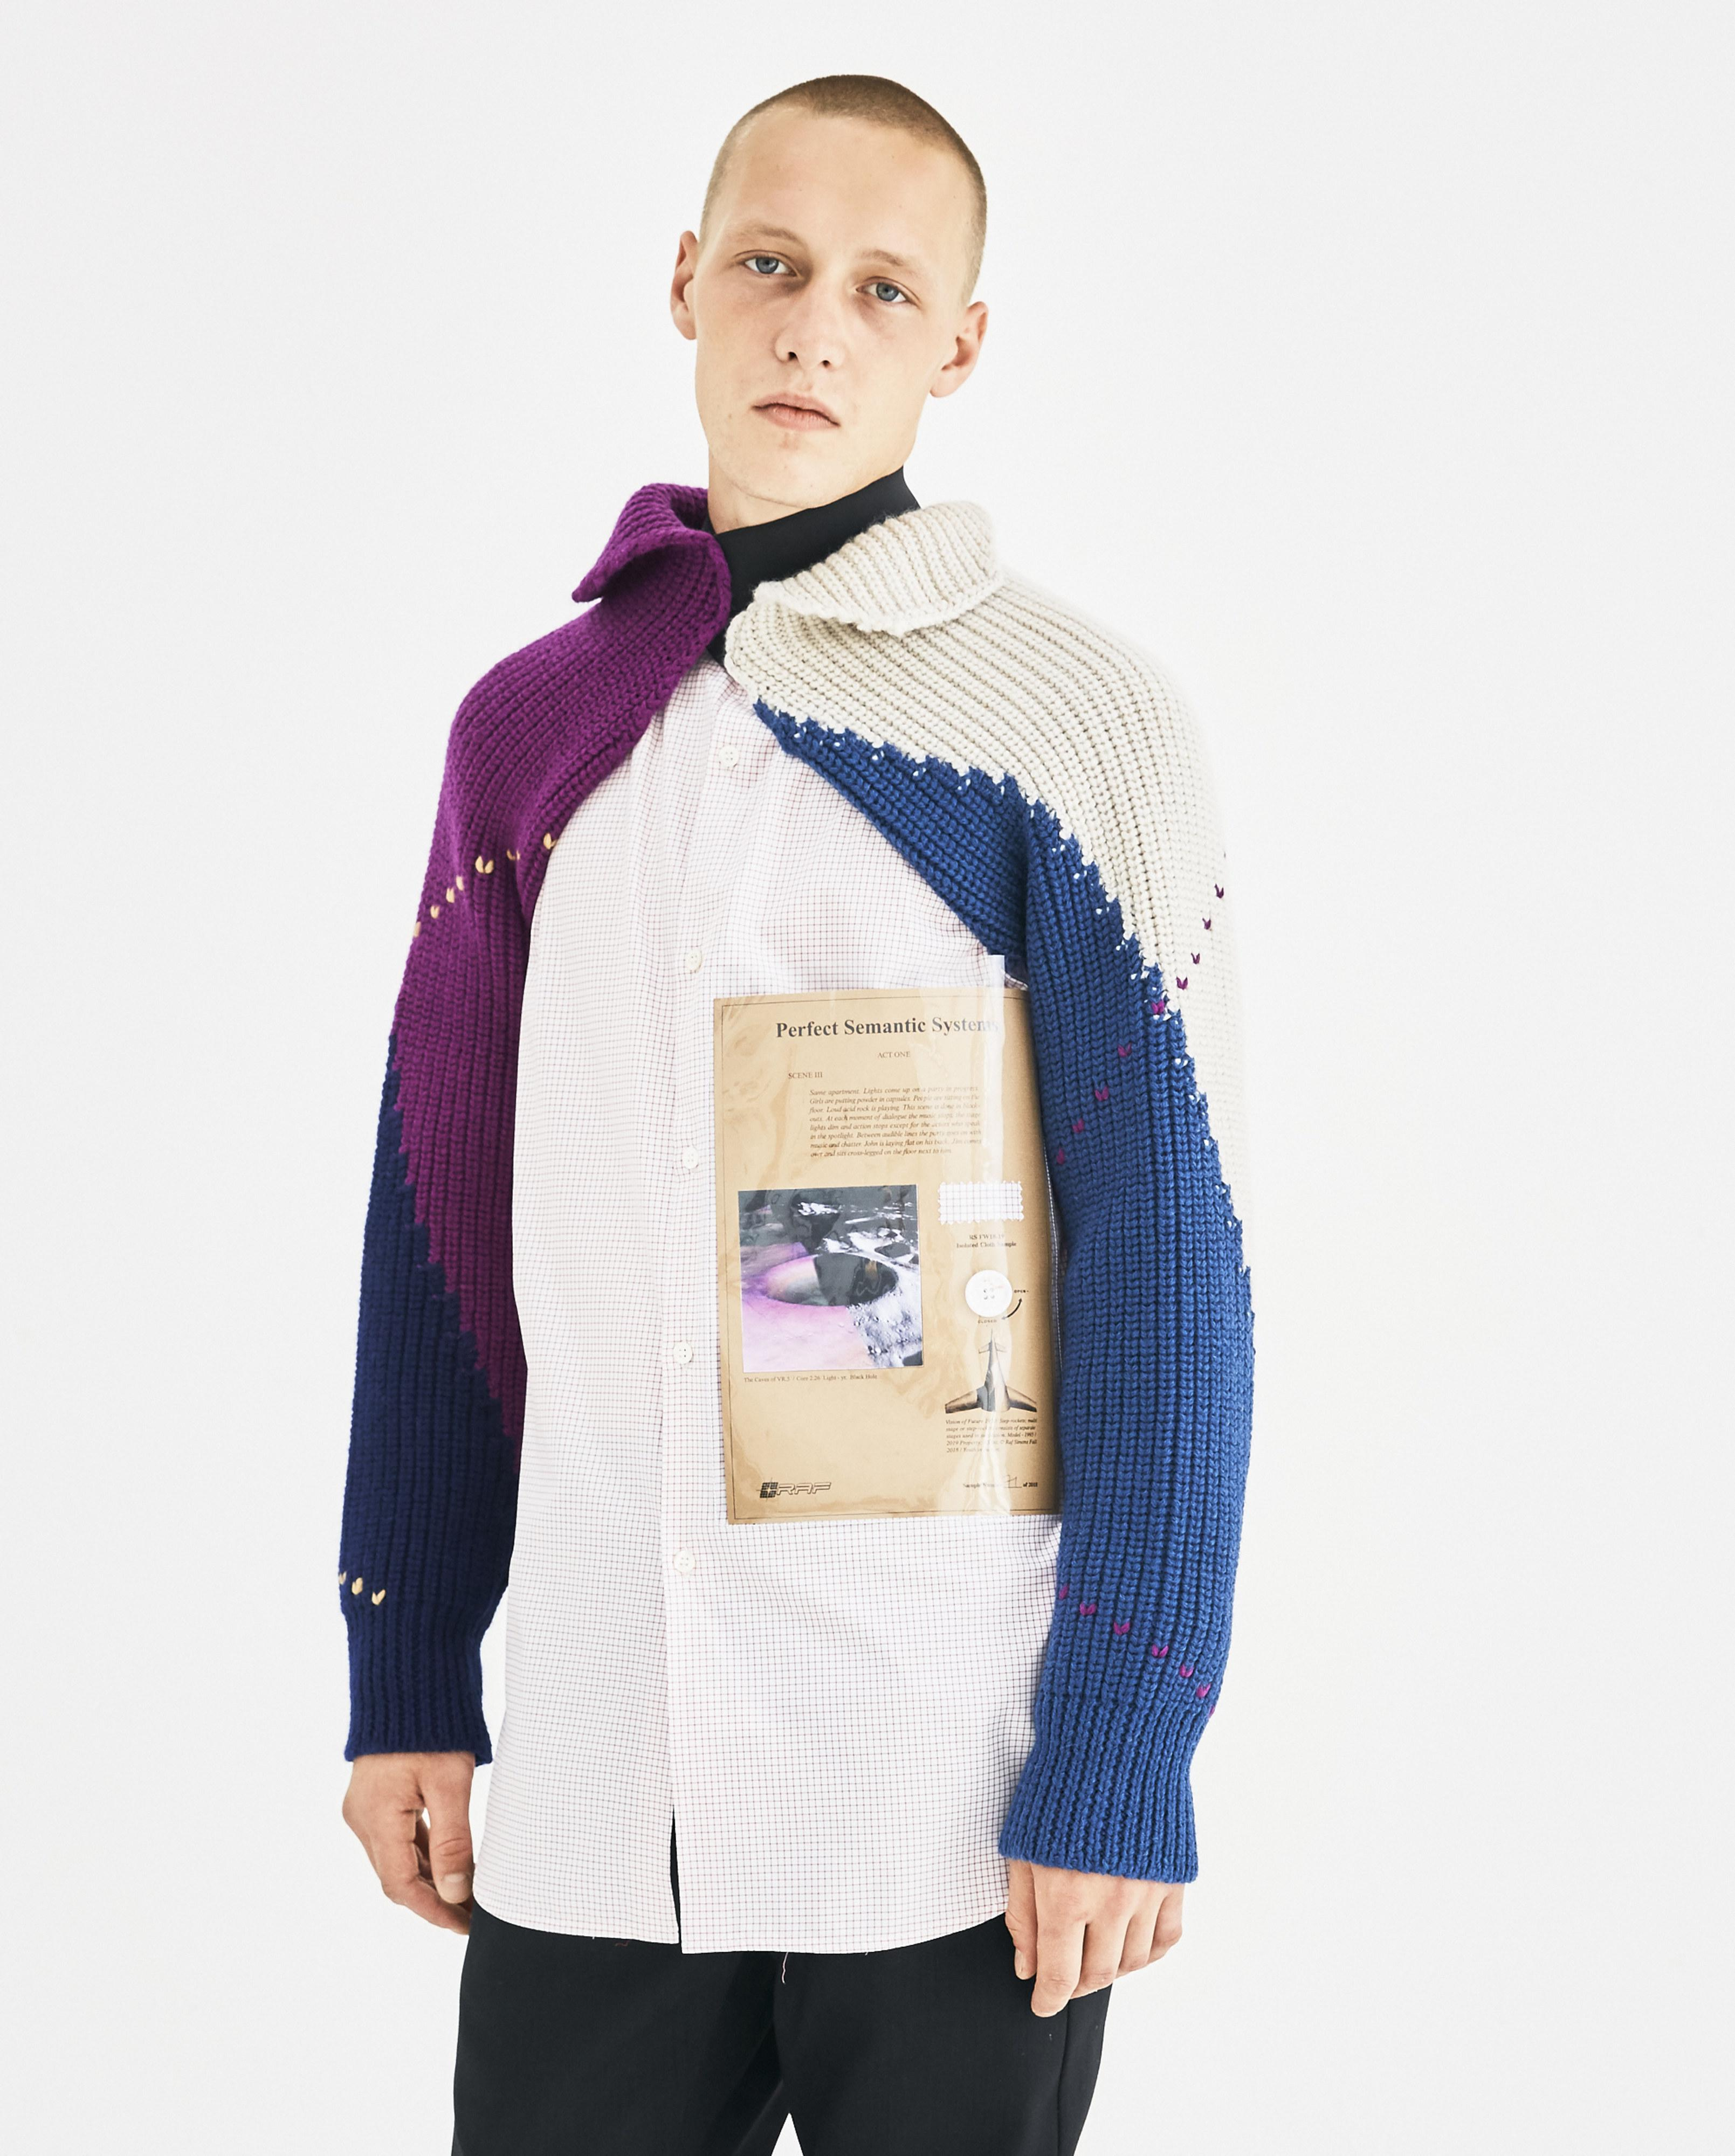 ff1bc6560ef397 Raf Simons Blue Knitted Sleeves With Elastic in Blue for Men - Lyst